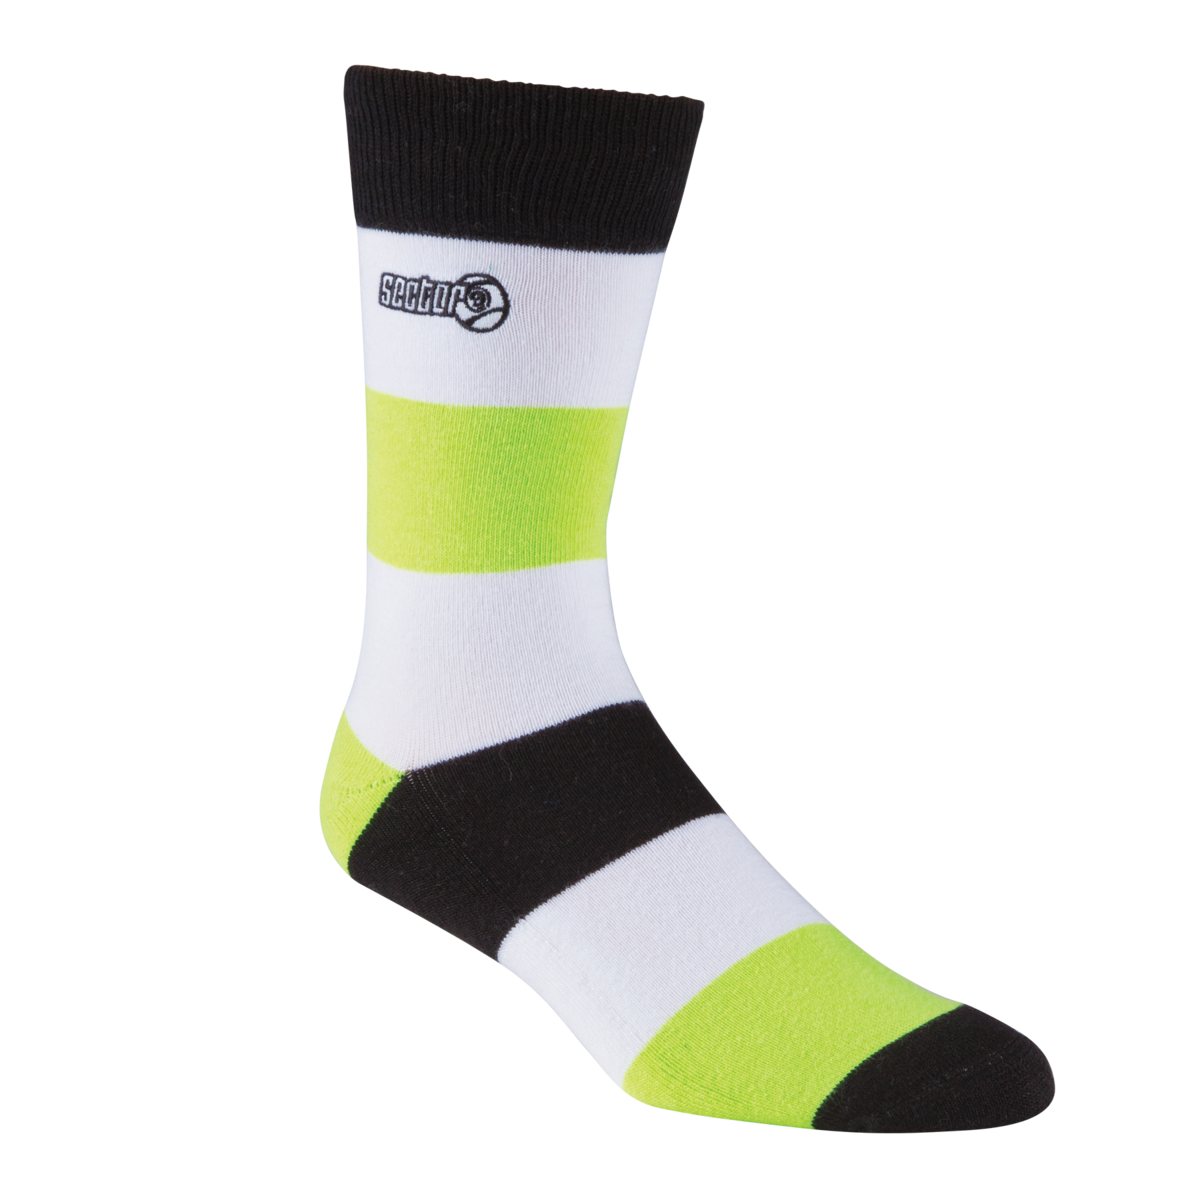 Sector 9 Bandito Socks